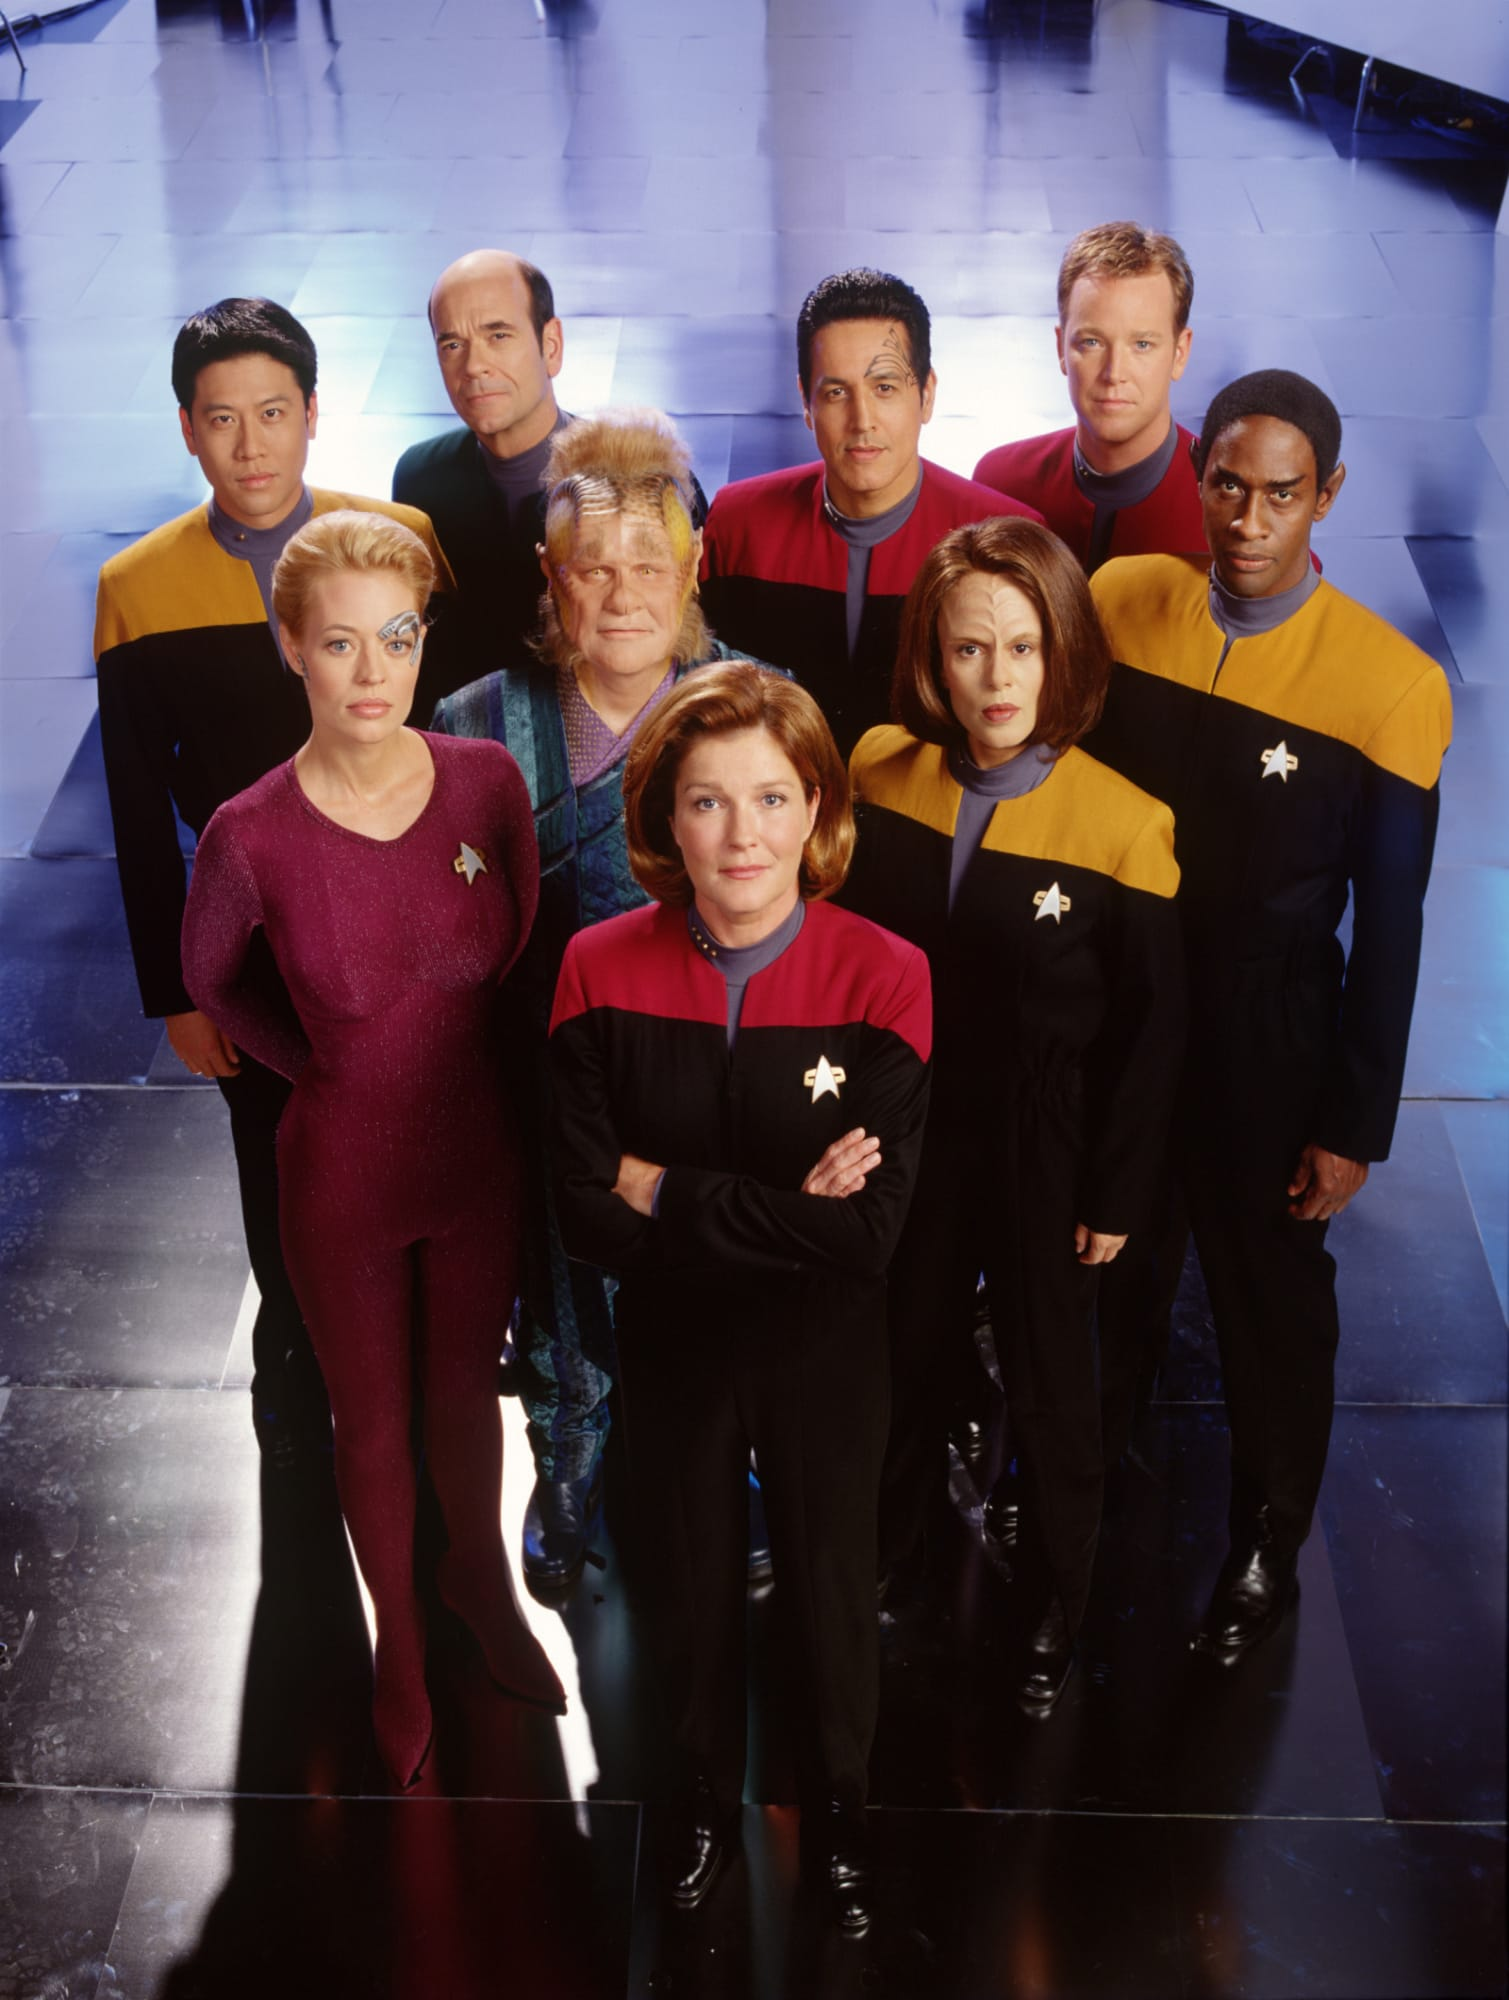 Writers had a dark twist planned for Voyager's homecoming